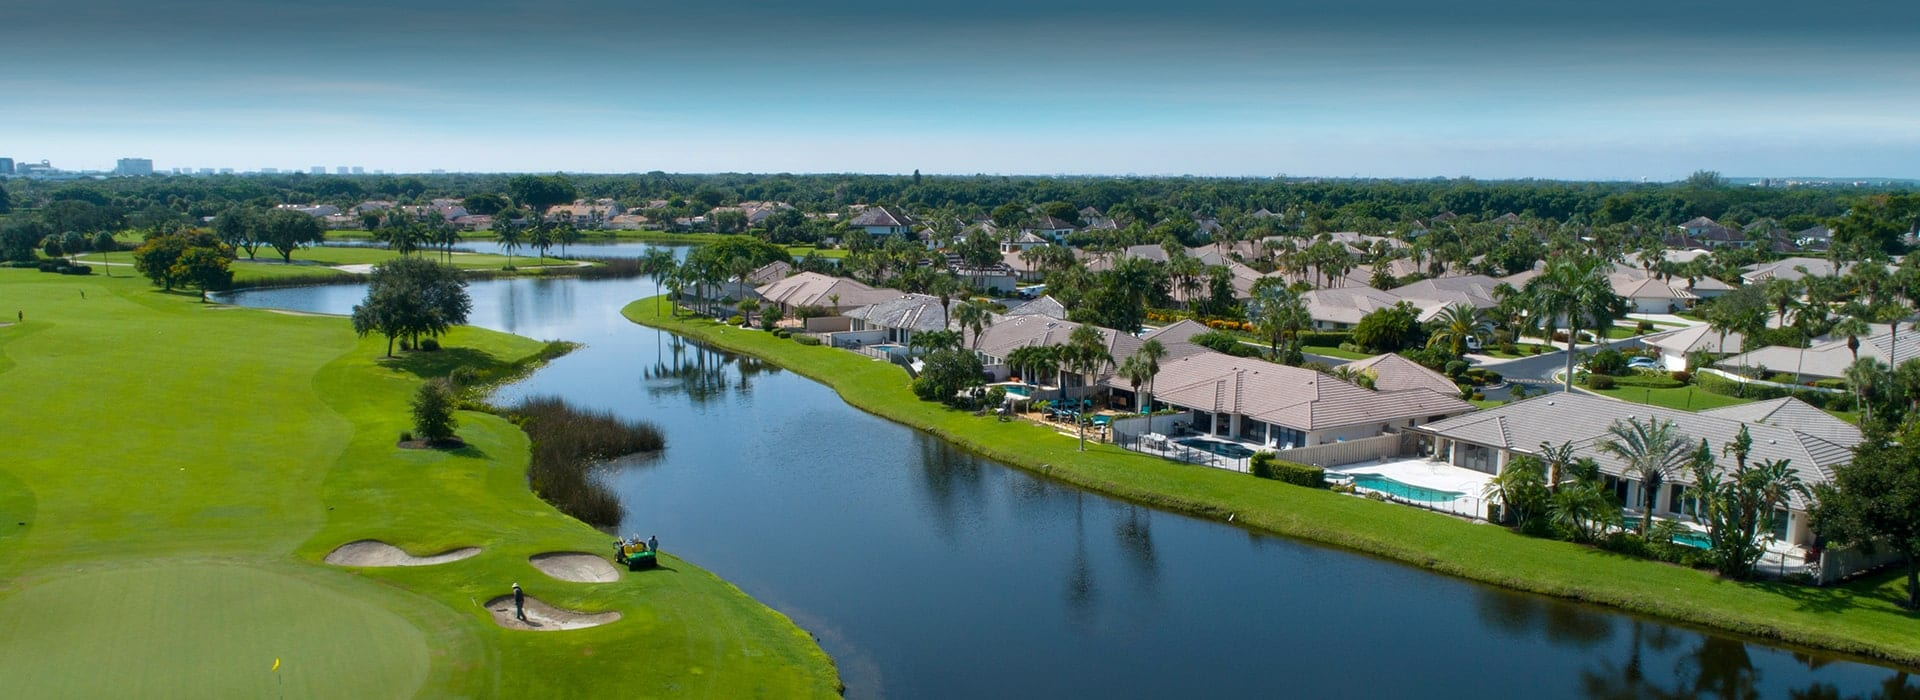 Cypress Point semi-attached and stand-alone villas at Boca West overlooking the water and golf course